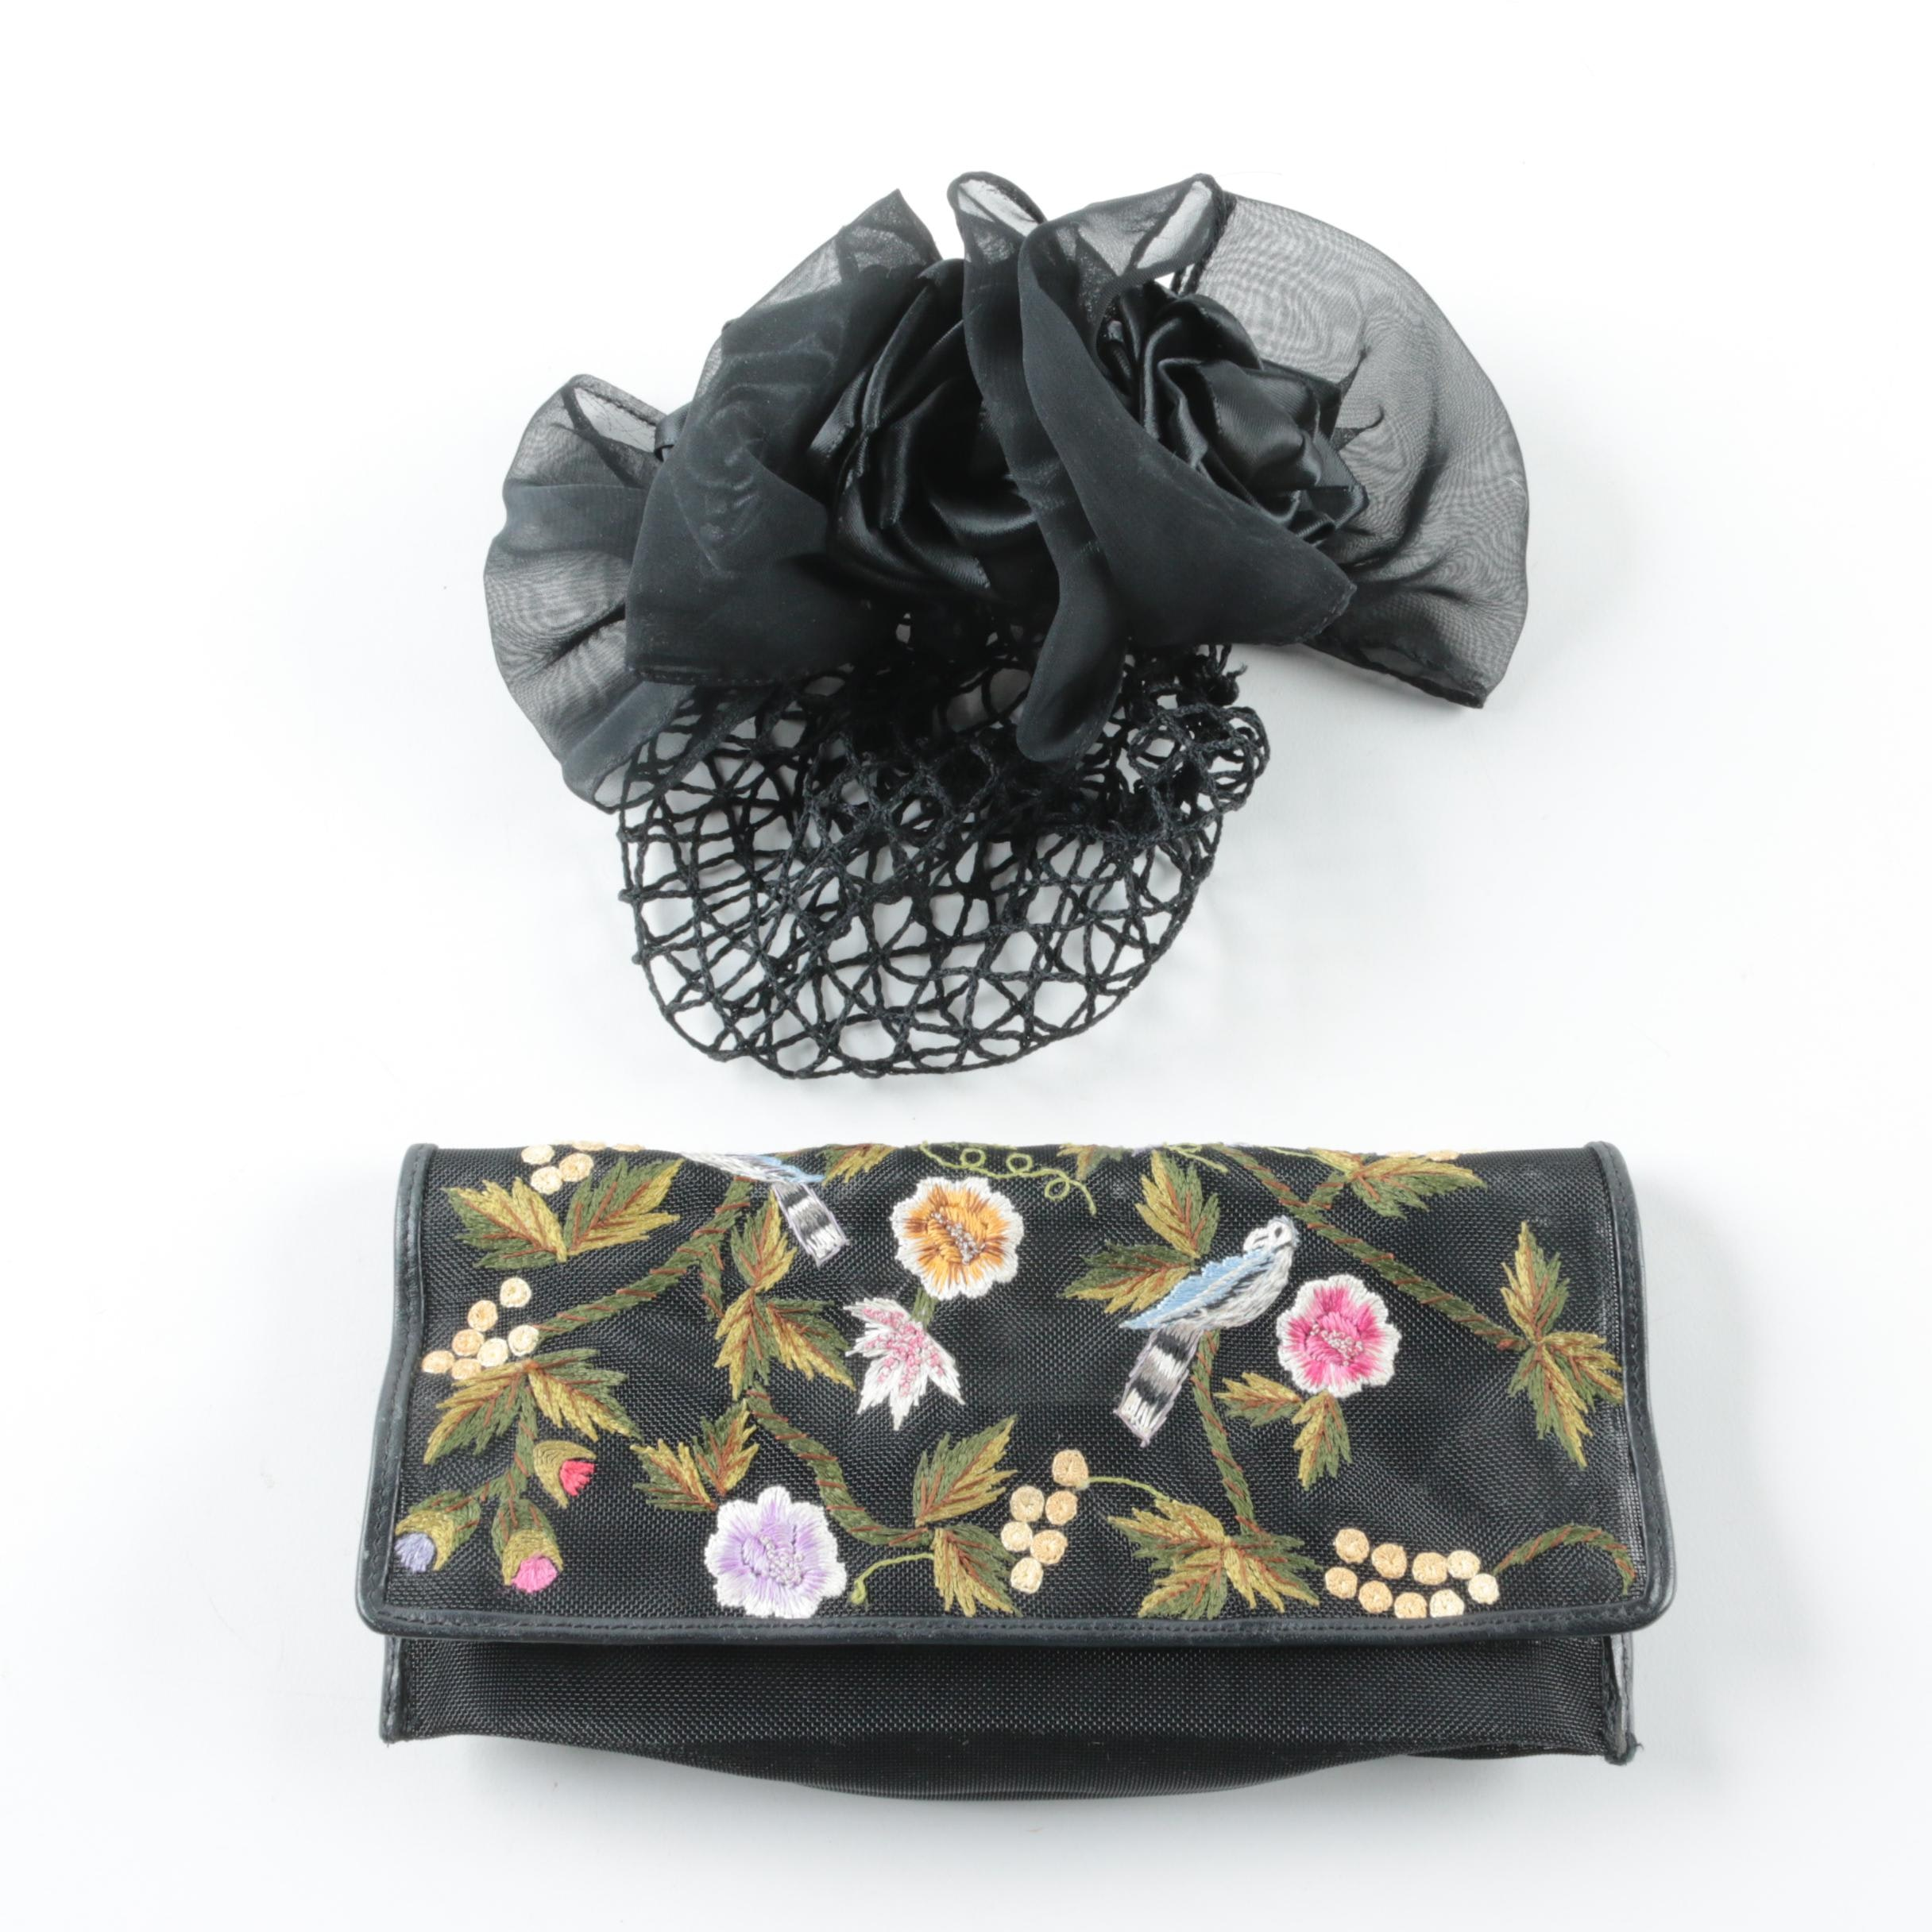 Michelle Hatch Mesh Embroidered Clutch and Eve Reid Hairpiece